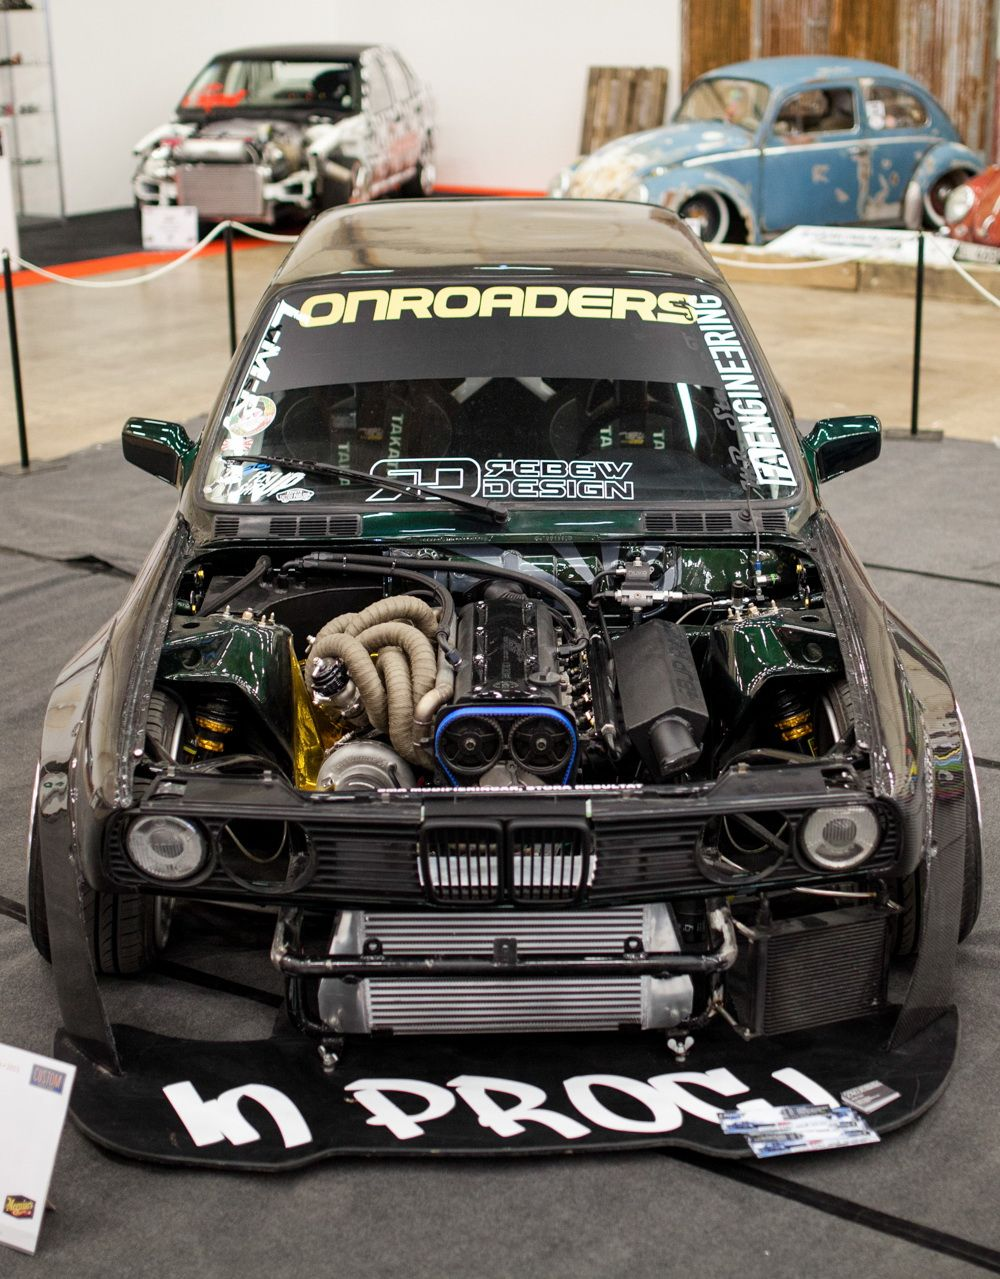 Carbon Widebody Bmw E30 Running What Seems To Be A Pretty Beefed Up